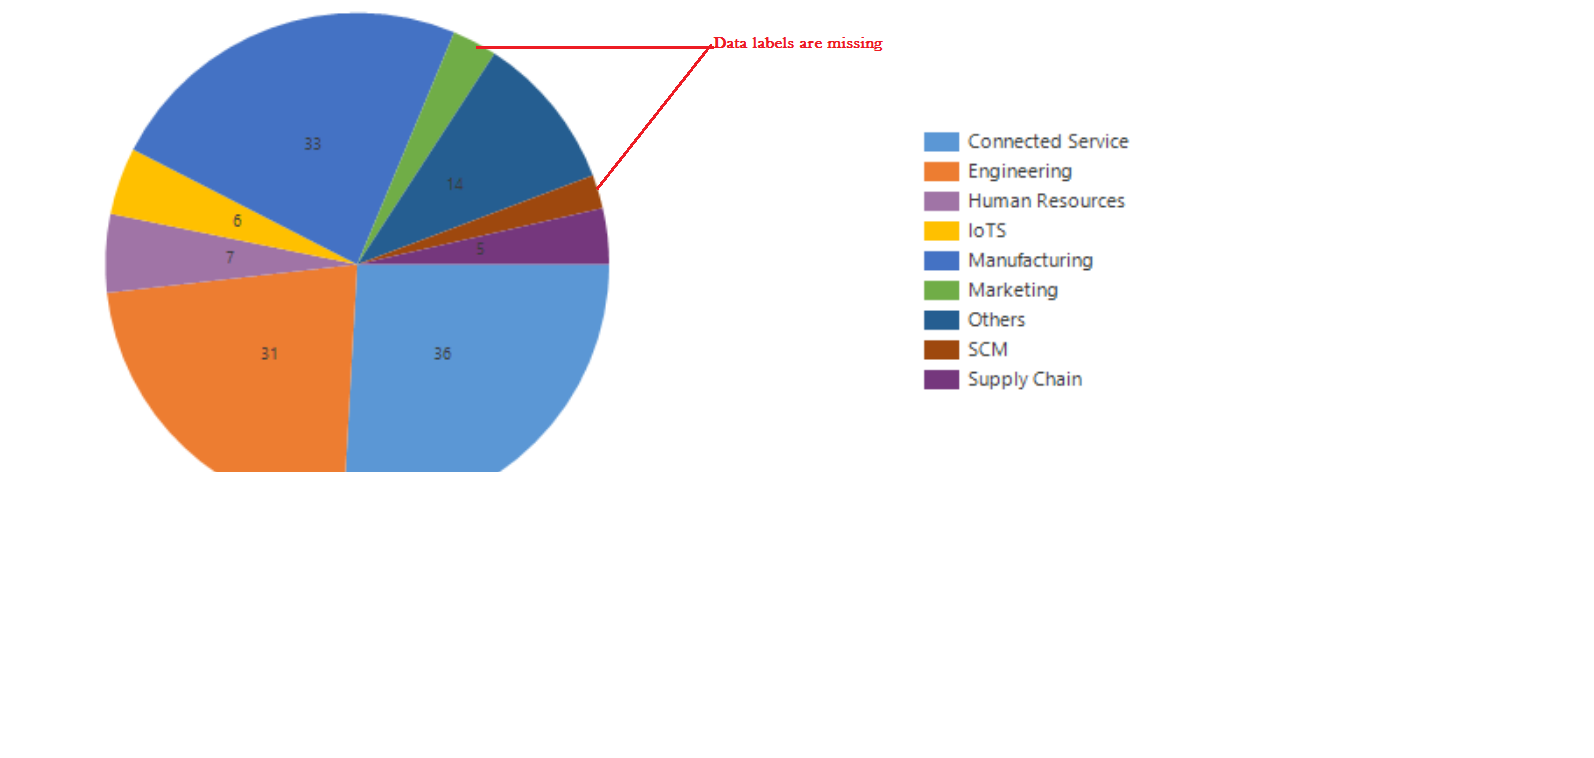 Crm 2015 Some Data Labels Are Missing In Pie Chart